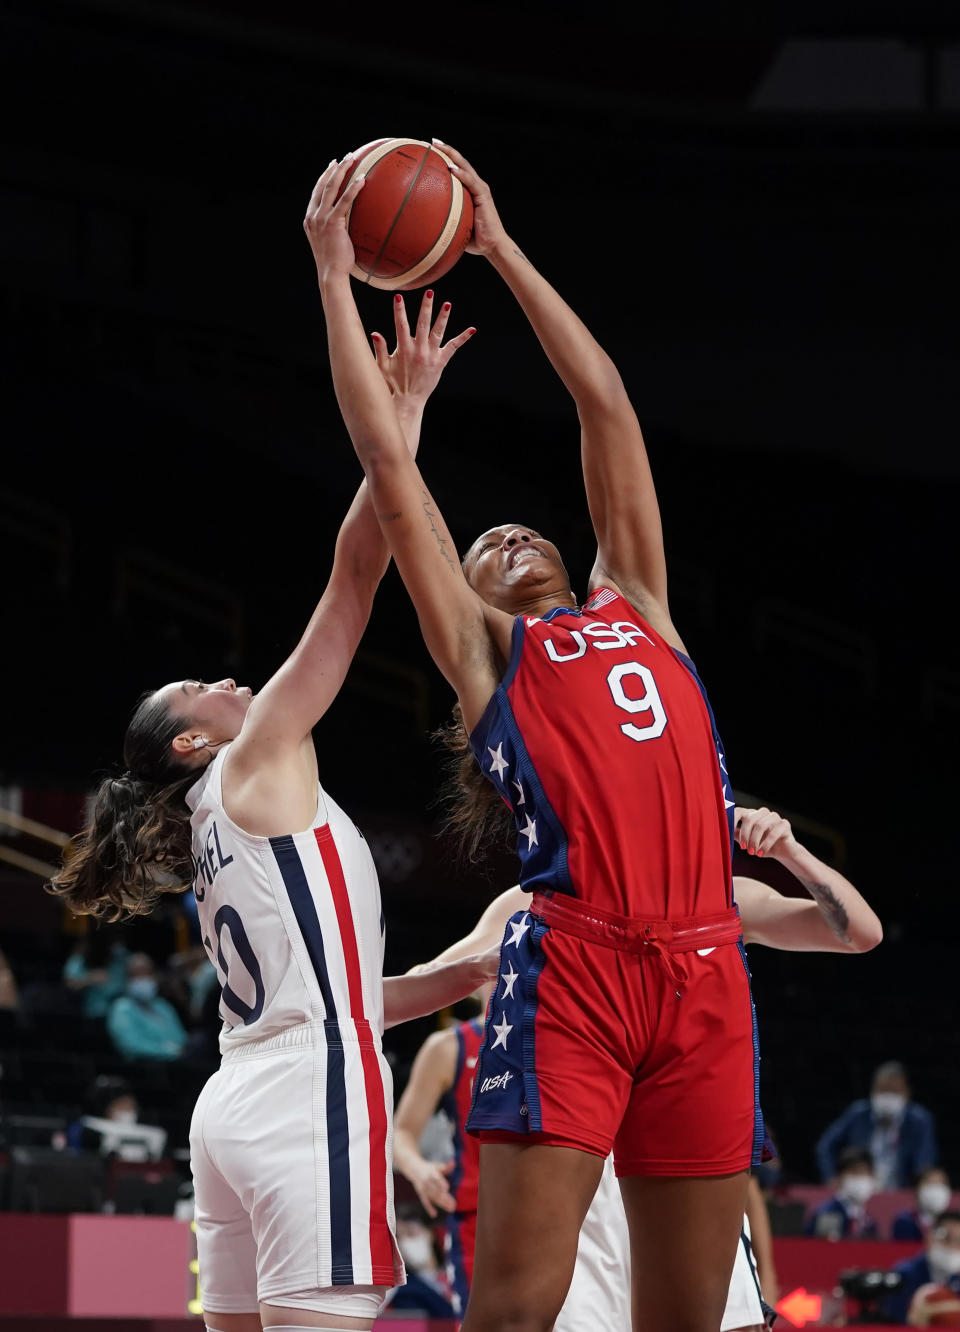 France's Sarah Michel (10), left, and United States' A'Ja Wilson (9) fight for the ball during women's basketball preliminary round game at the 2020 Summer Olympics, Monday, Aug. 2, 2021, in Saitama, Japan. (AP Photo/Charlie Neibergall)